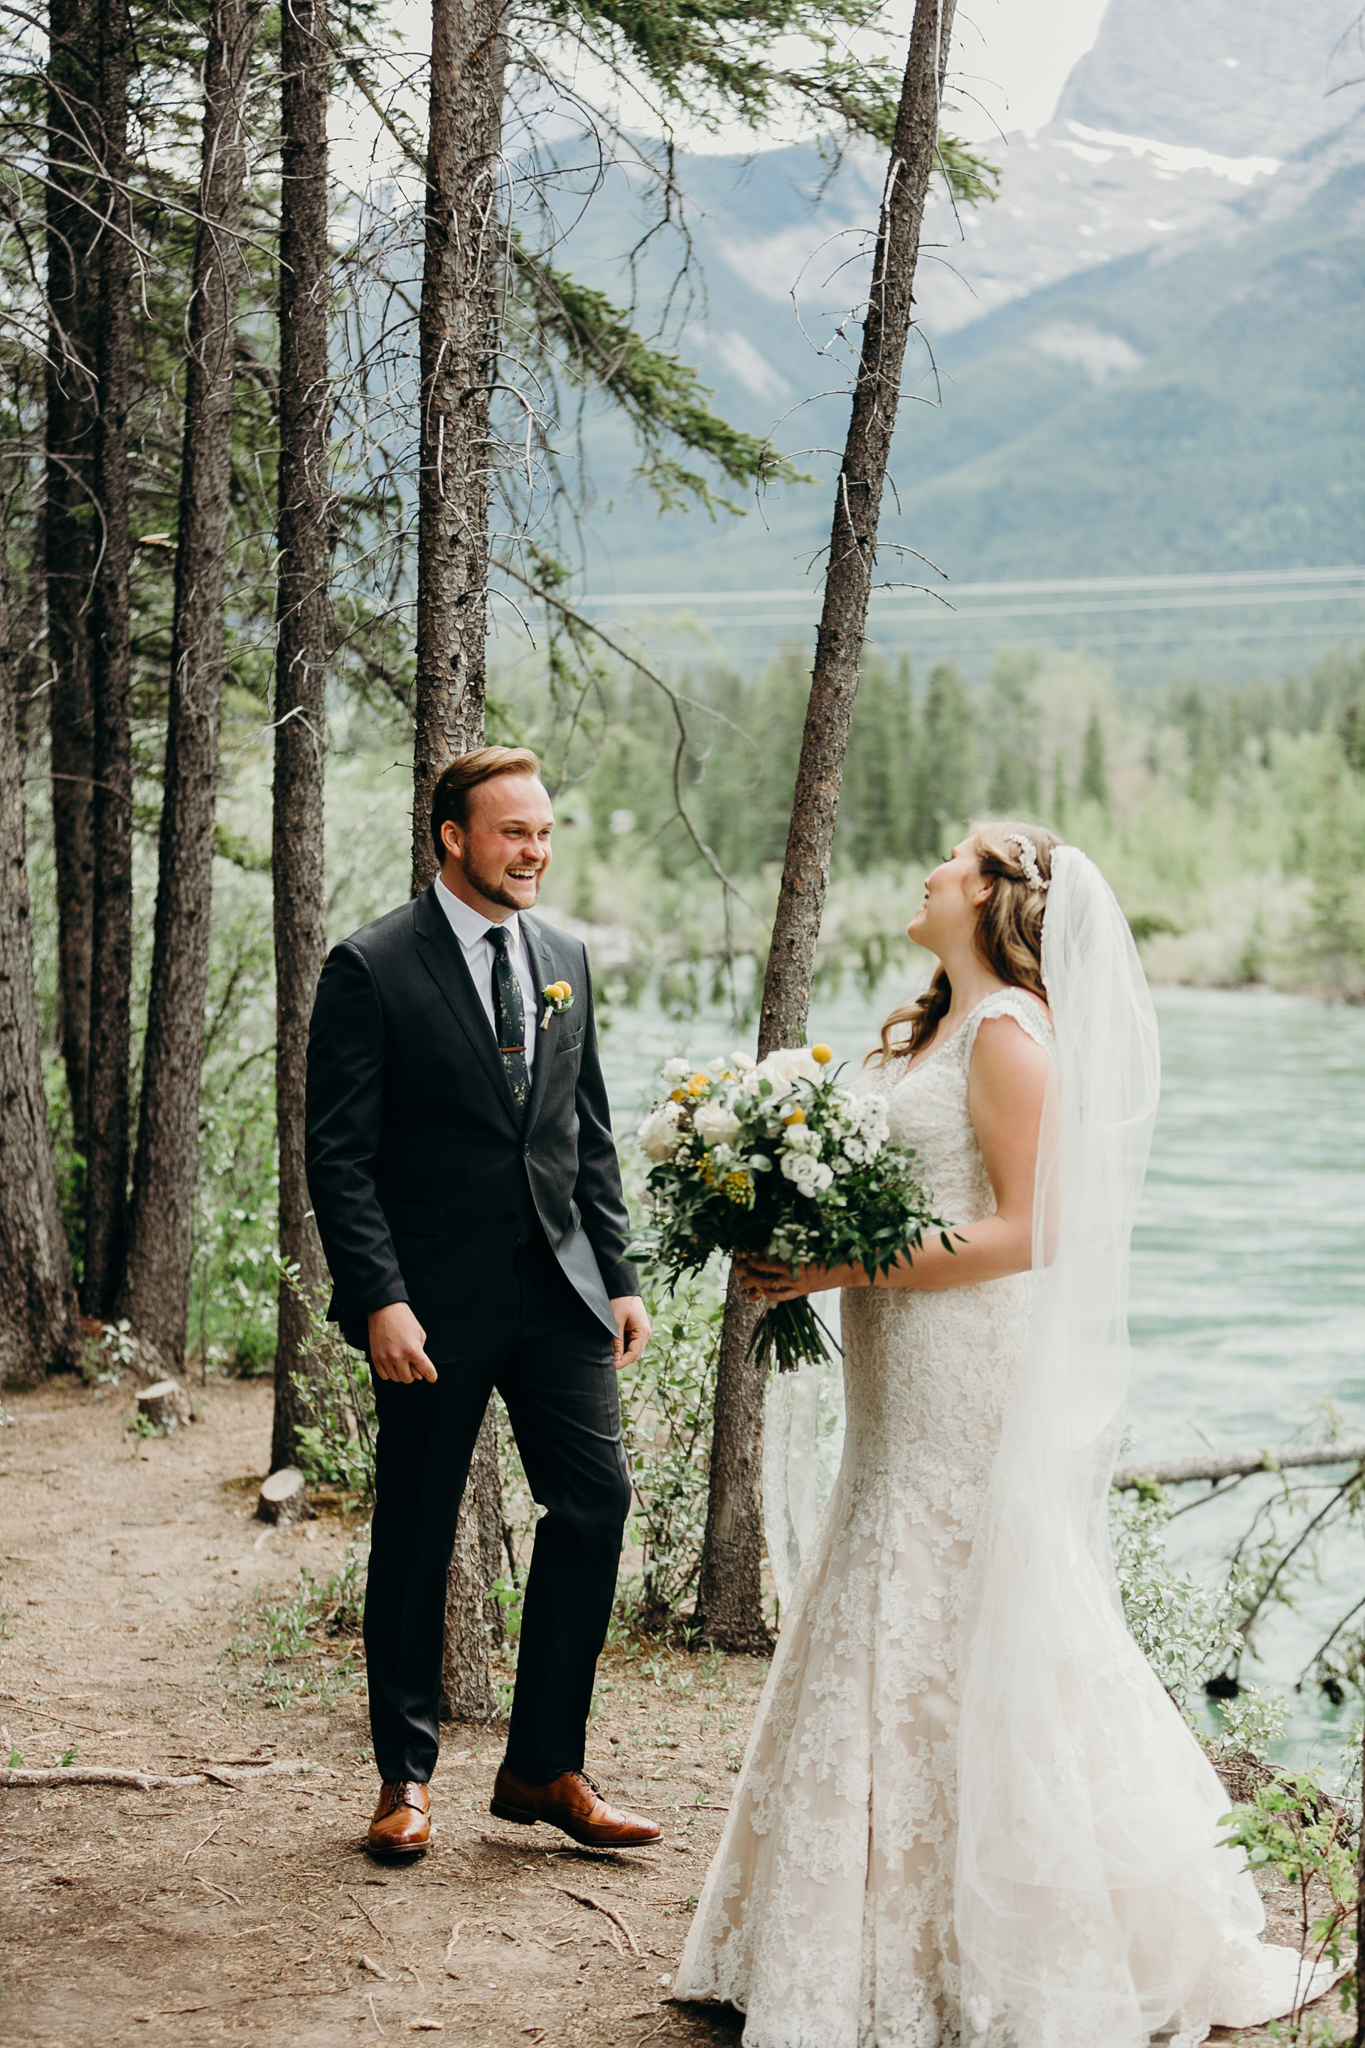 Groom sees bride during first look smiling with Bow River and mountains in background Canmore AB